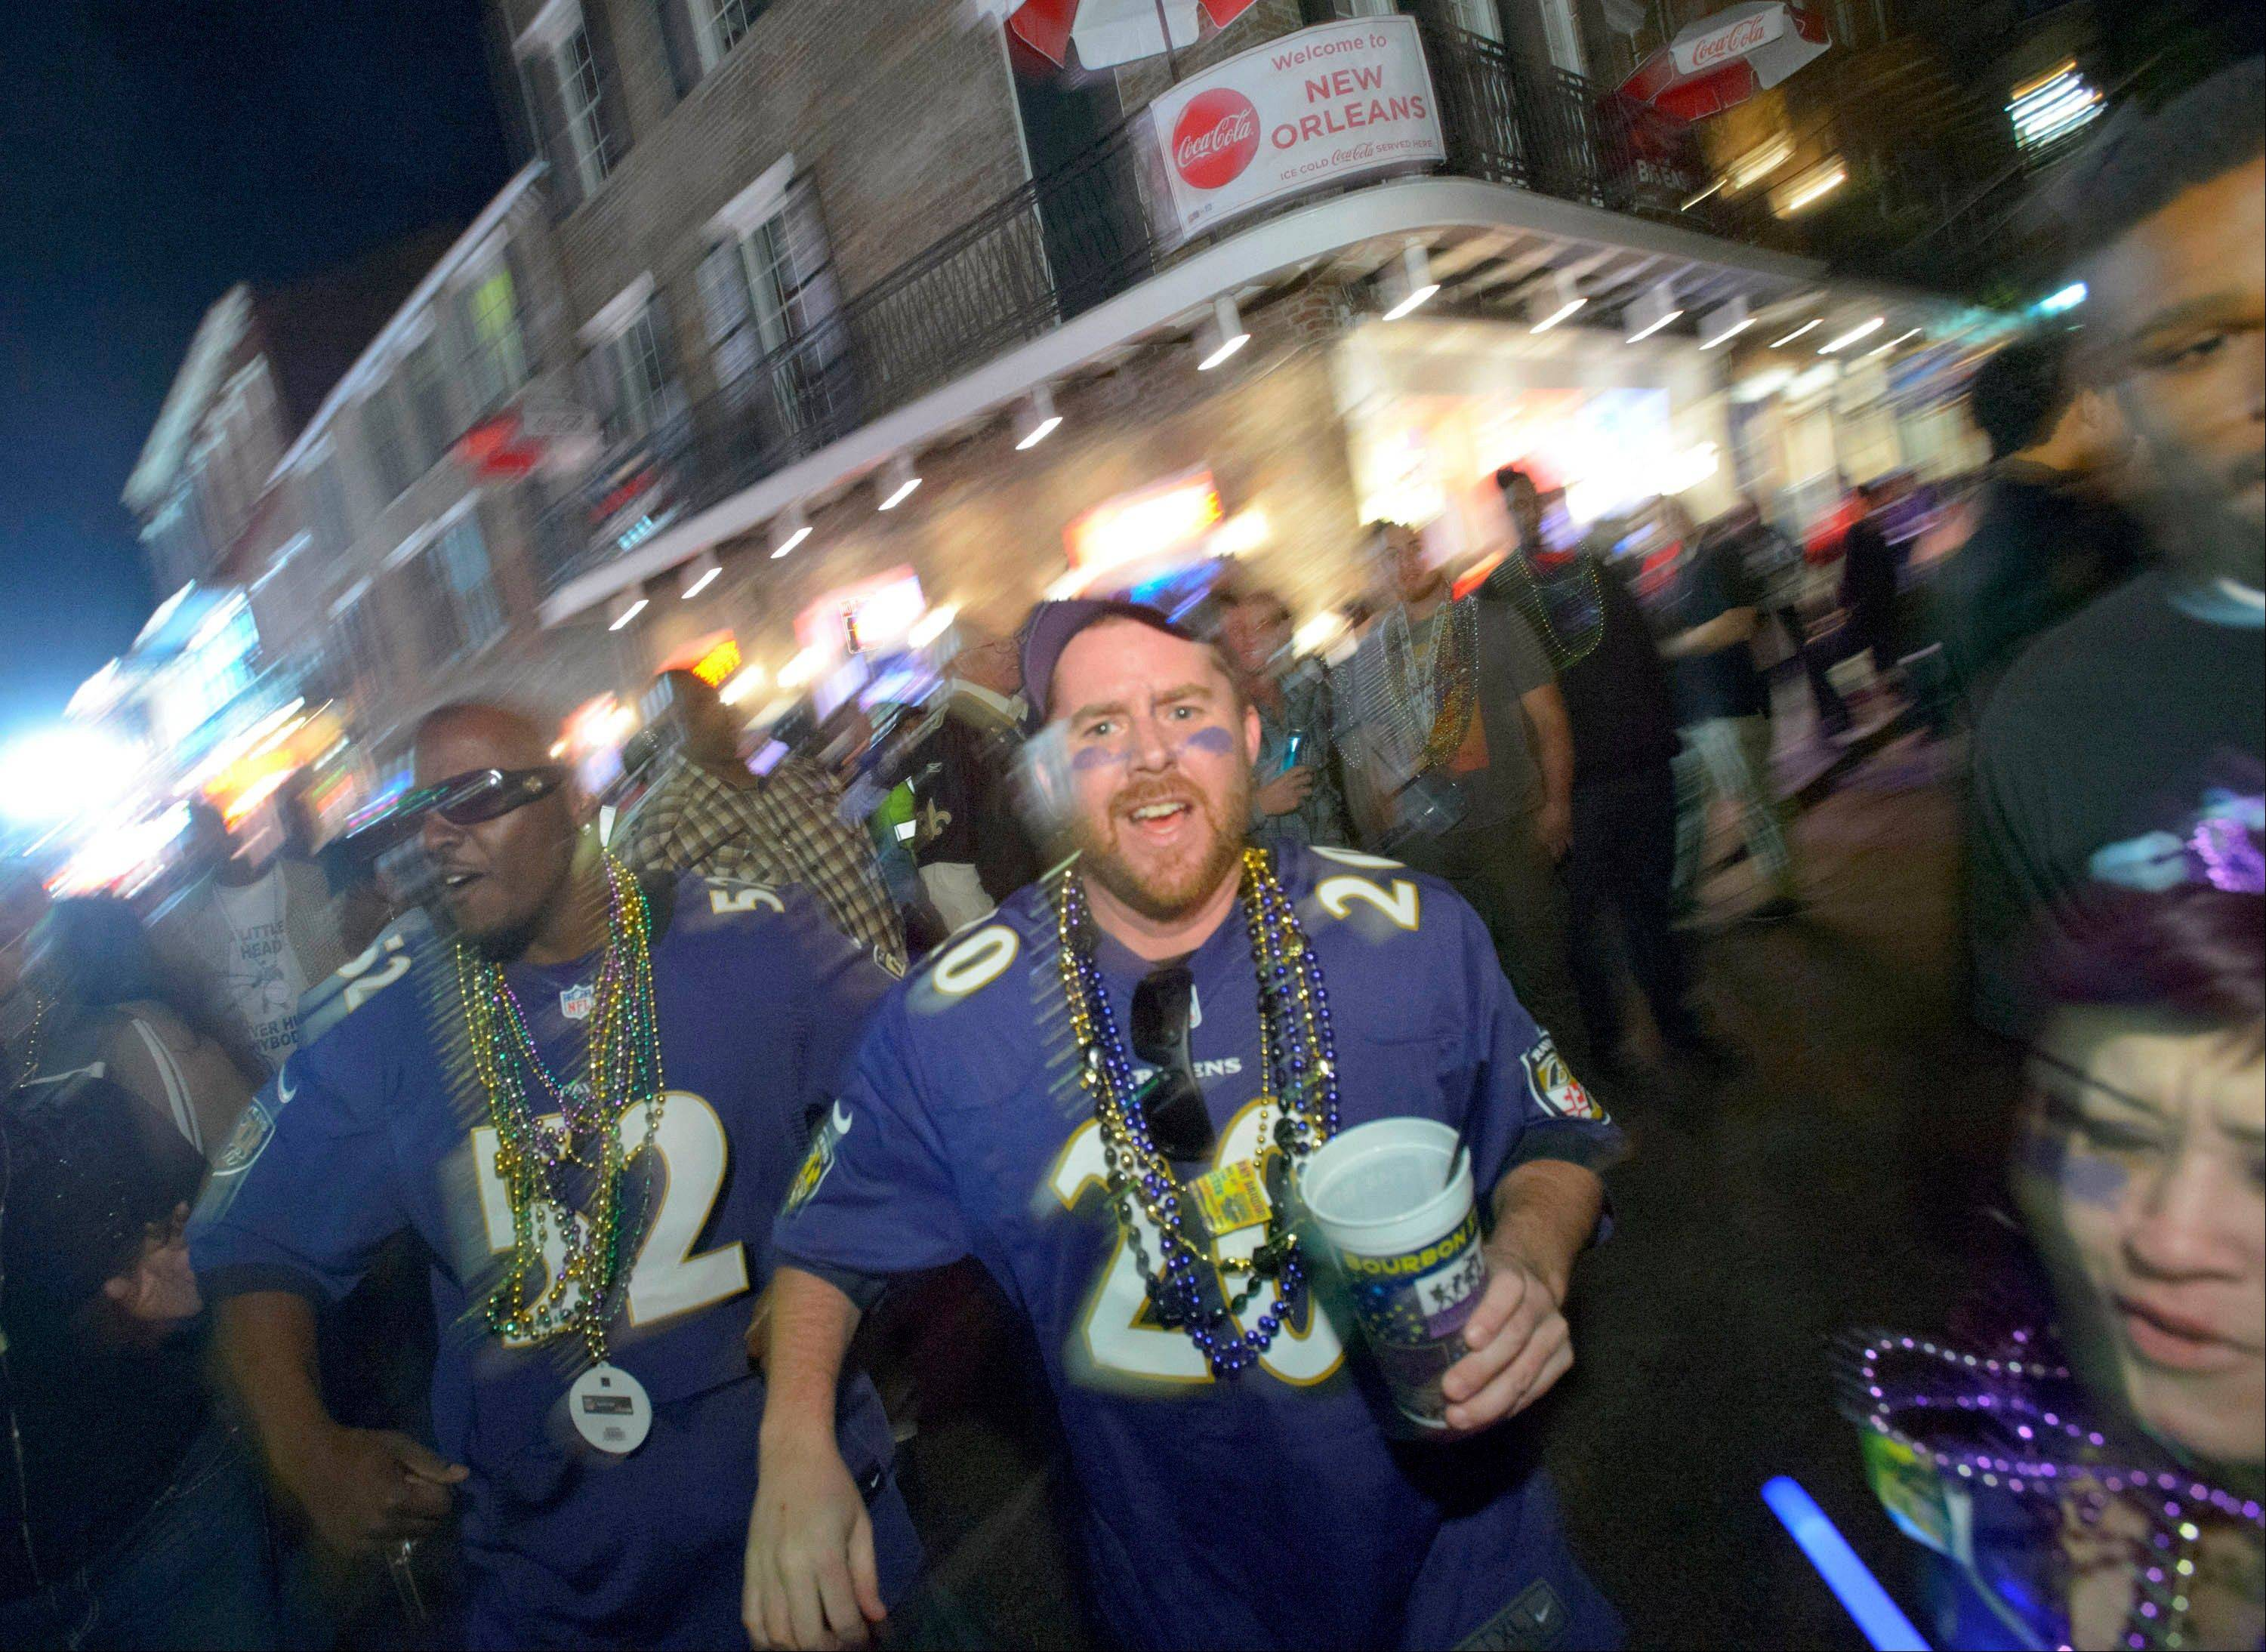 Baltimore Ravens fans celebrate the team's Super Bowl victory Sunday night on Bourbon Street in New Orleans.